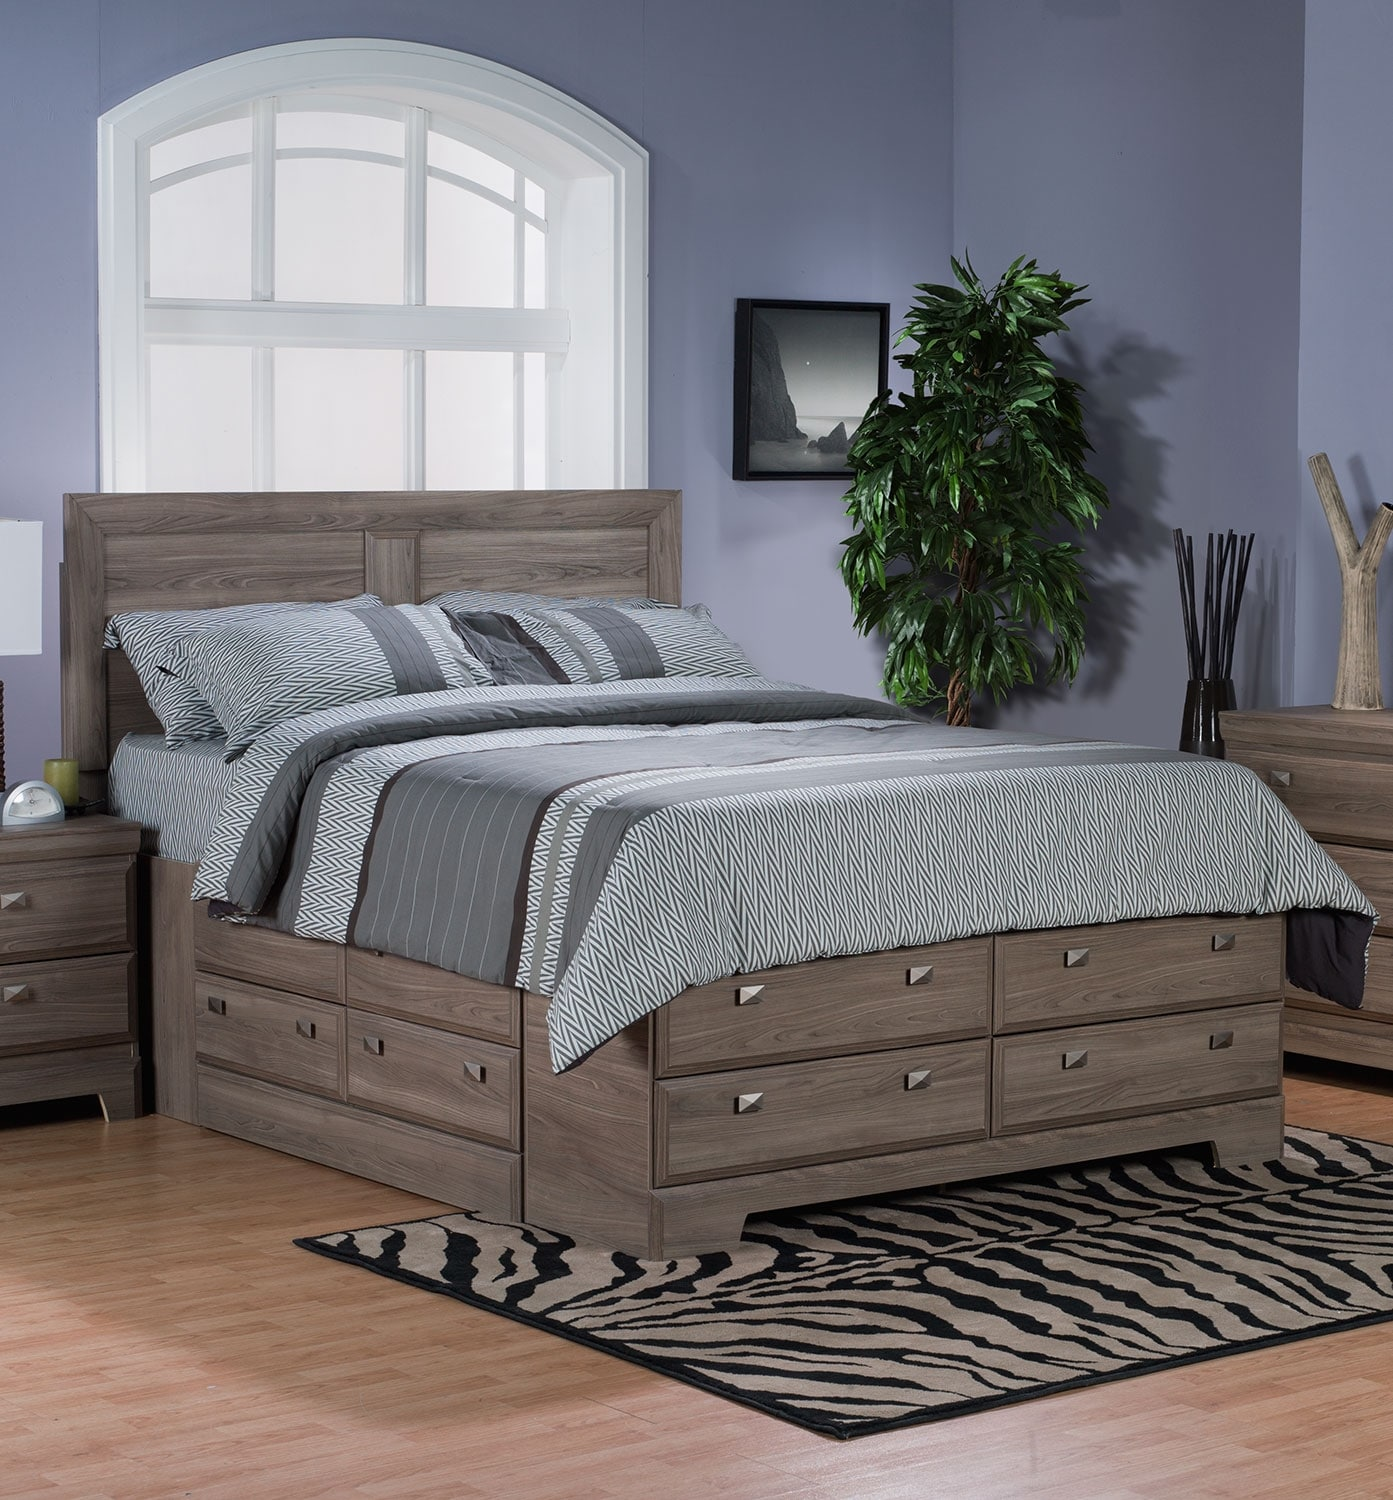 Bedroom Furniture - Yorkdale Light Full Storage Bed